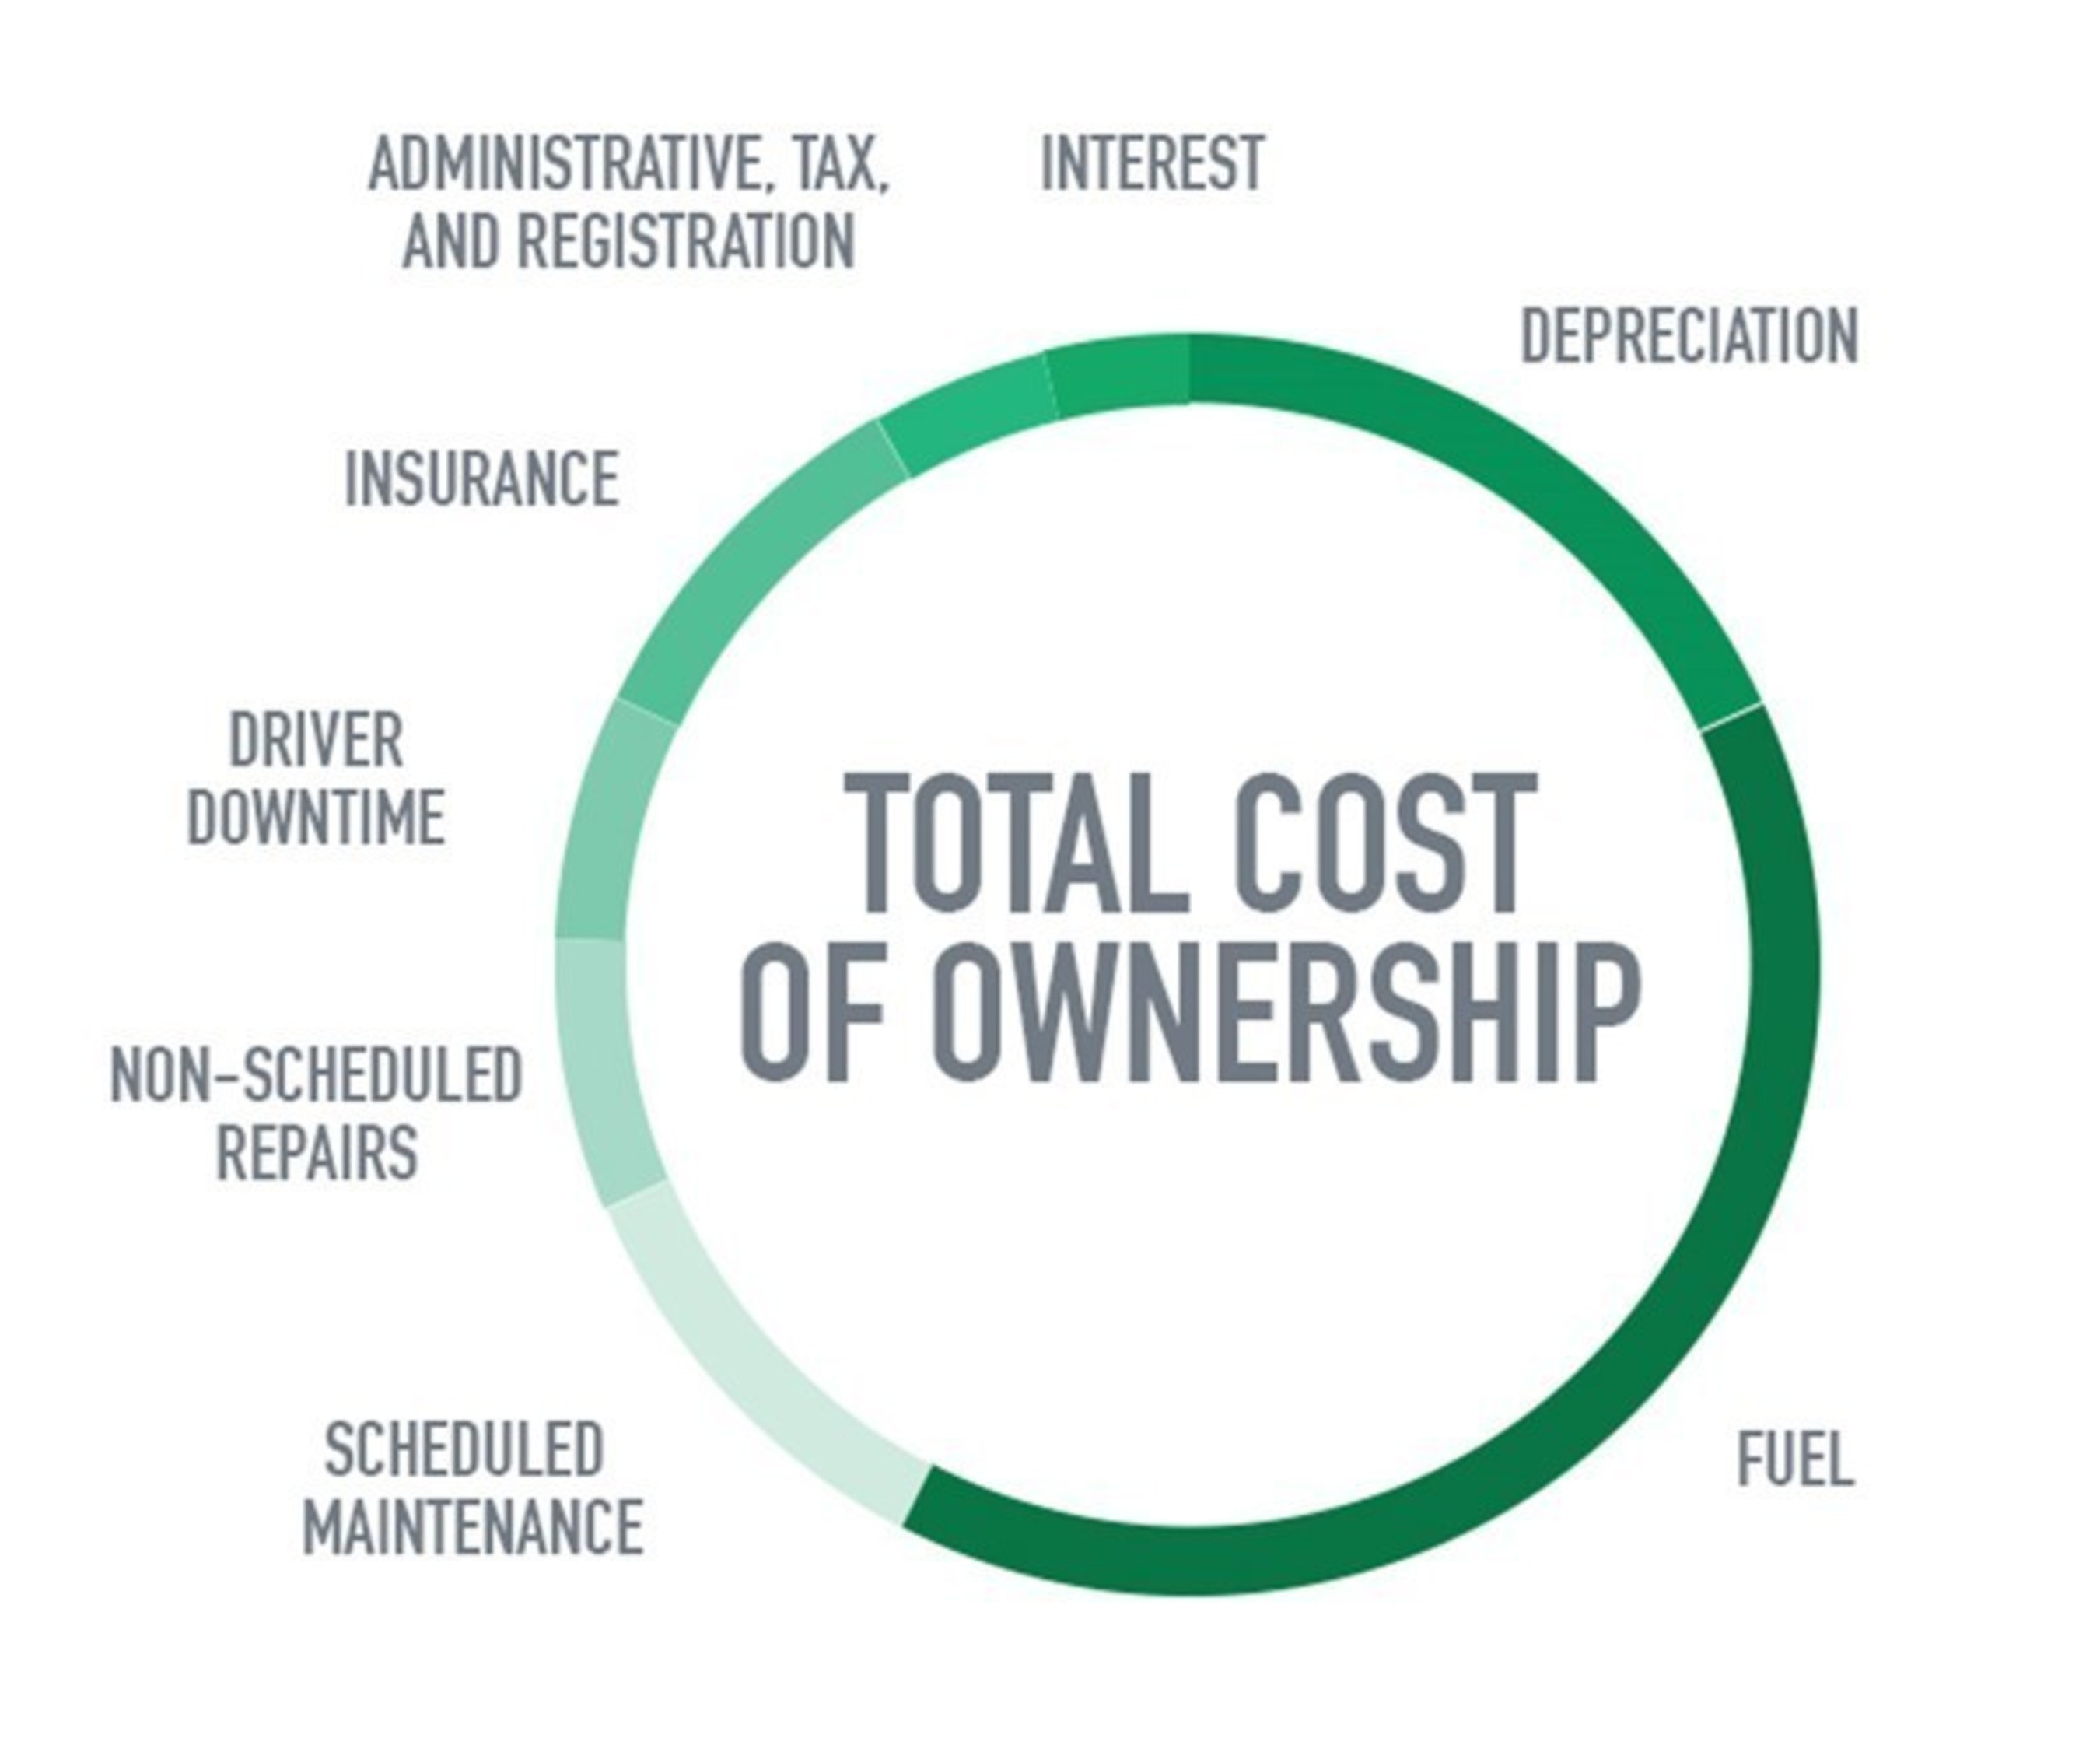 The total cost of ownership